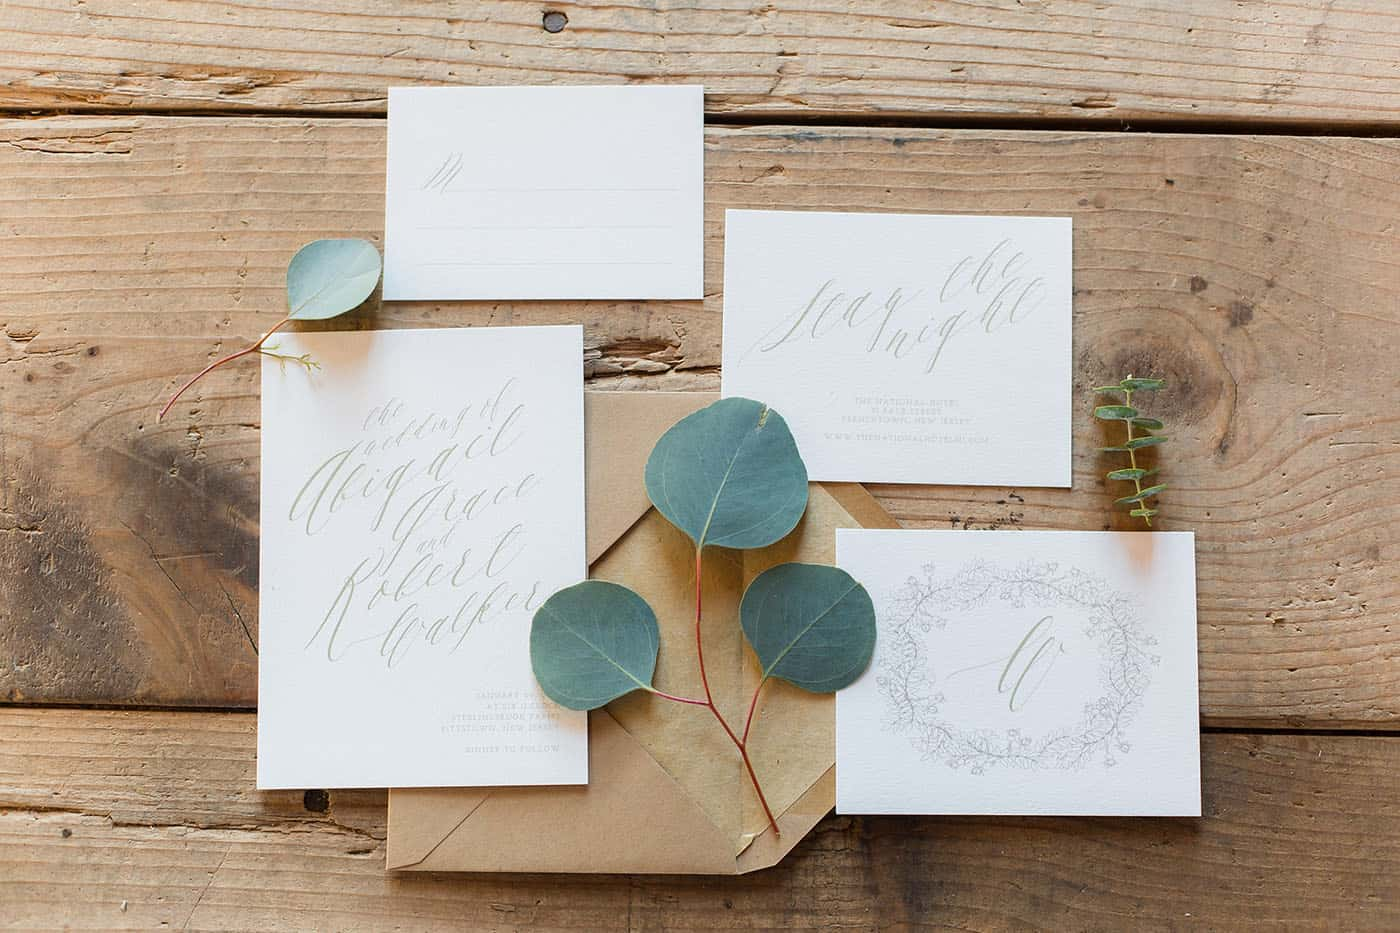 wedding invitation set on a wooden table with leaves by customer service whiz cinnamon wolfe